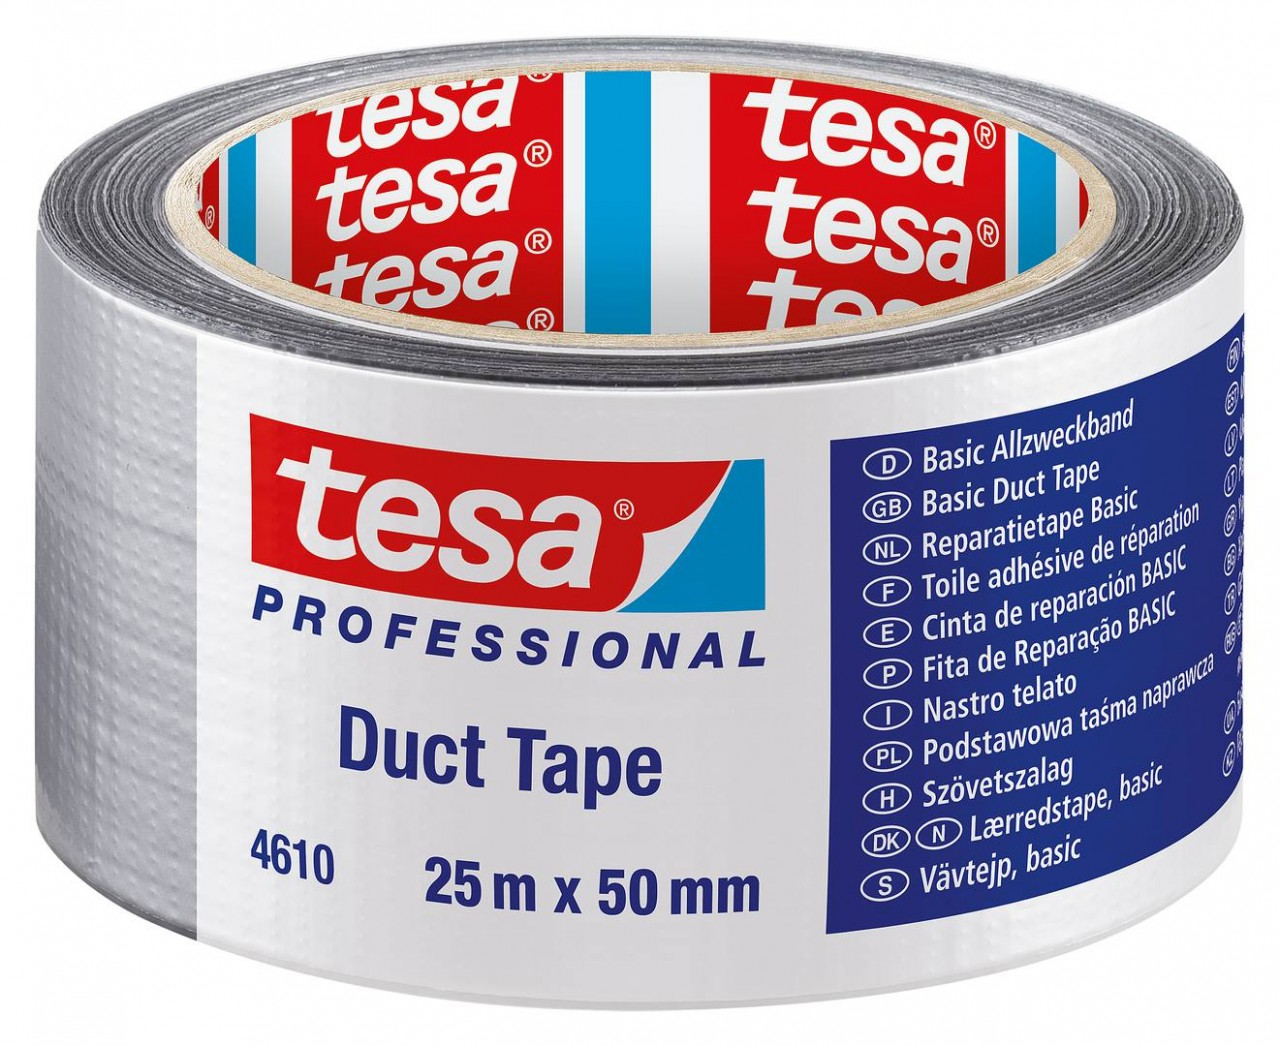 tesa 4610, PE-beschichtetes Basis Duct Tape